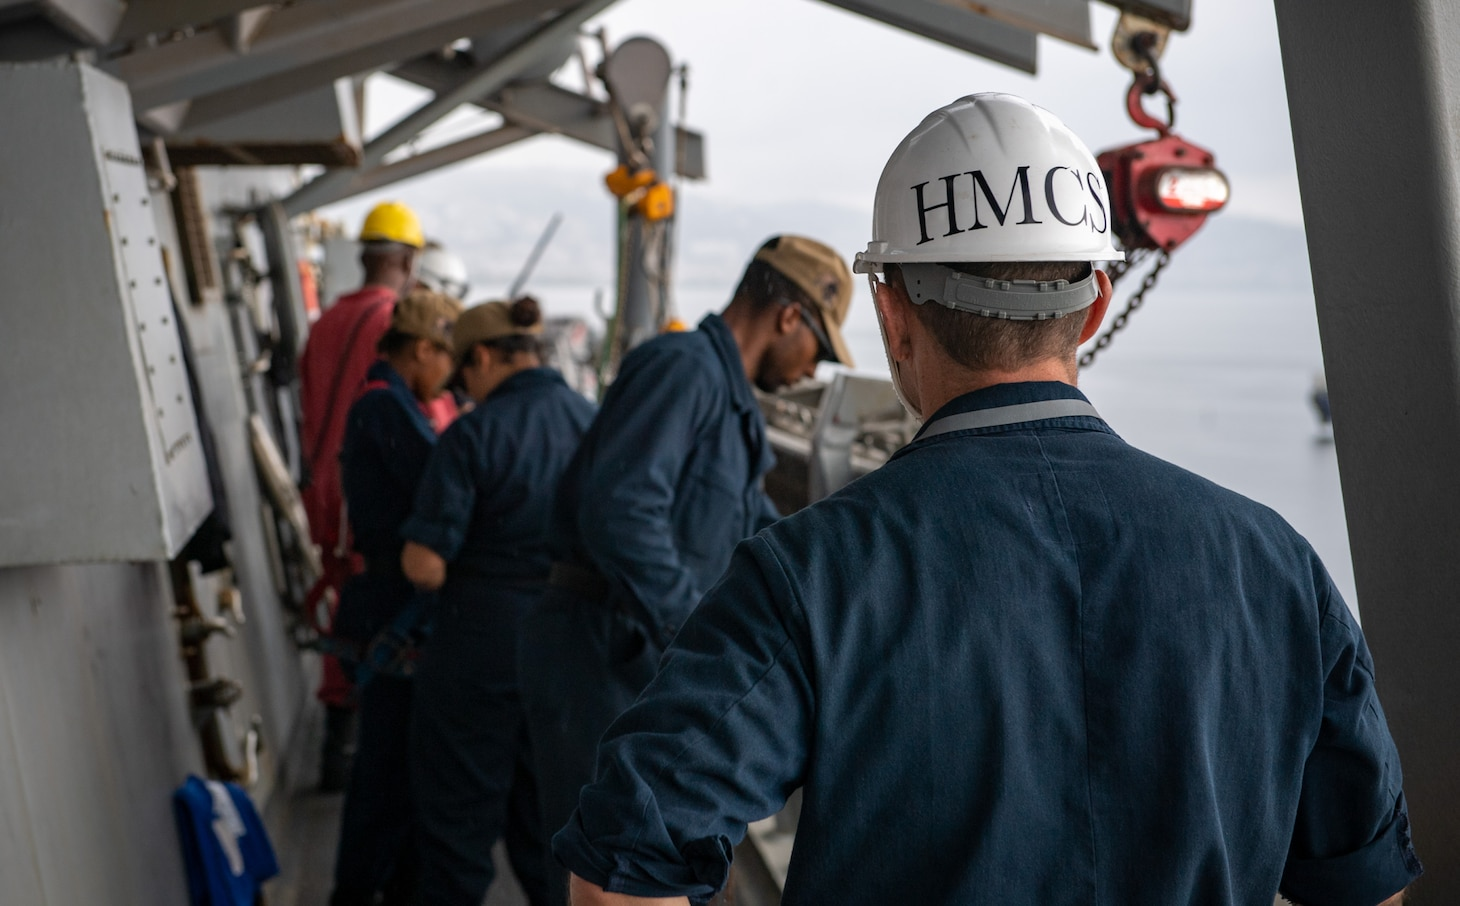 Senior Chief Hospital Corpsman Jermy Brower, assigned to the Arleigh Burke-class guided-missile destroyer USS Porter (DDG 78), stands a medical coverage watch during a sea and anchor detail as the ship arrives in Golcuk, Turkey, Aug. 16, 2019.